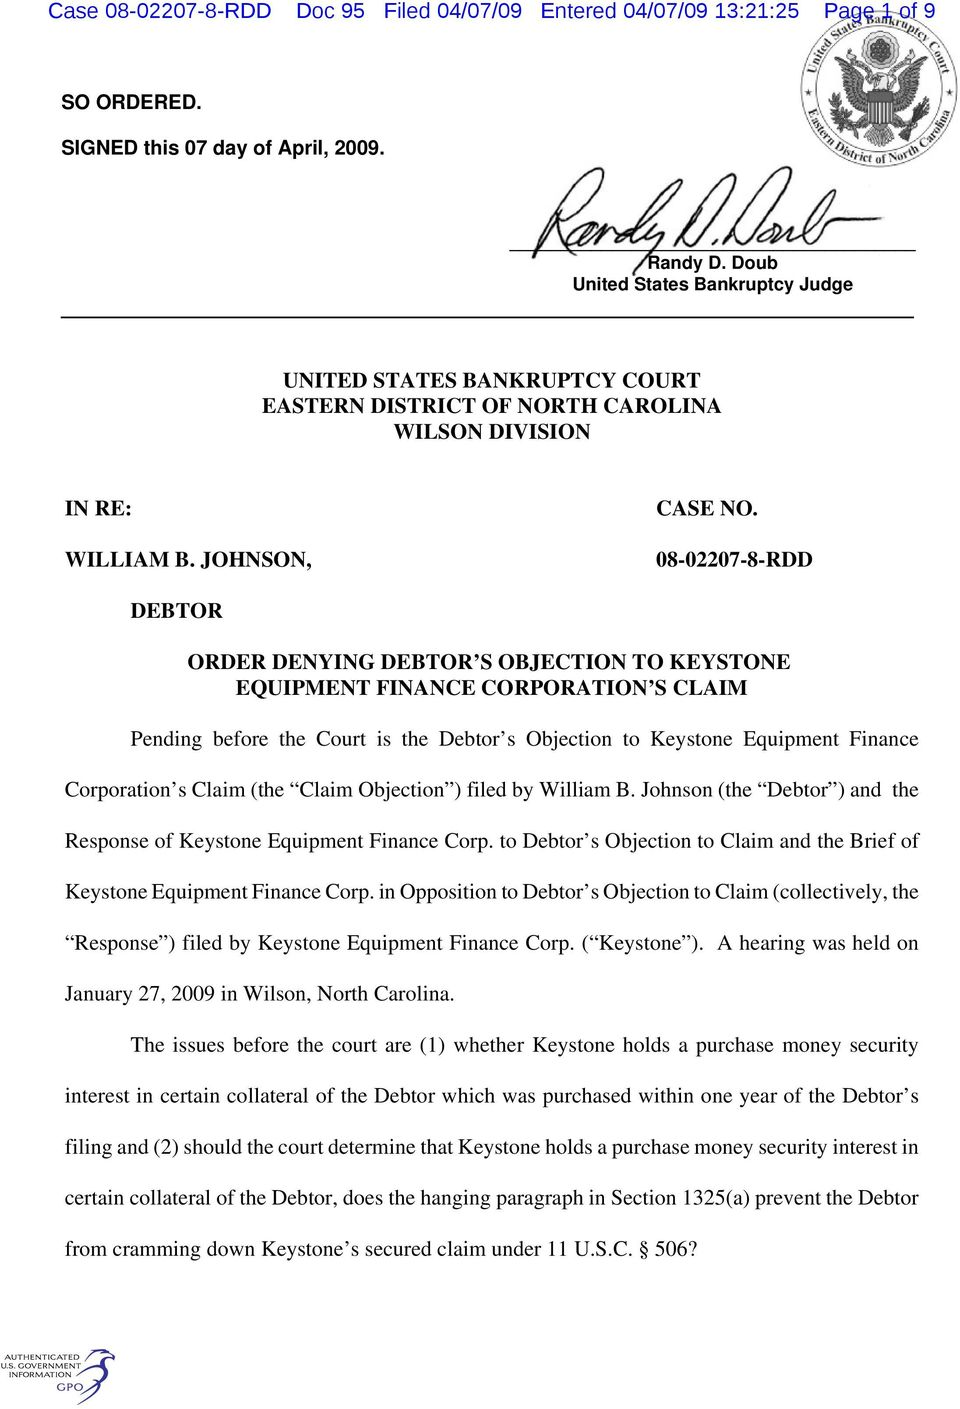 08-02207-8-RDD DEBTOR ORDER DENYING DEBTOR S OBJECTION TO KEYSTONE EQUIPMENT FINANCE CORPORATION S CLAIM Pending before the Court is the Debtor s Objection to Keystone Equipment Finance Corporation s